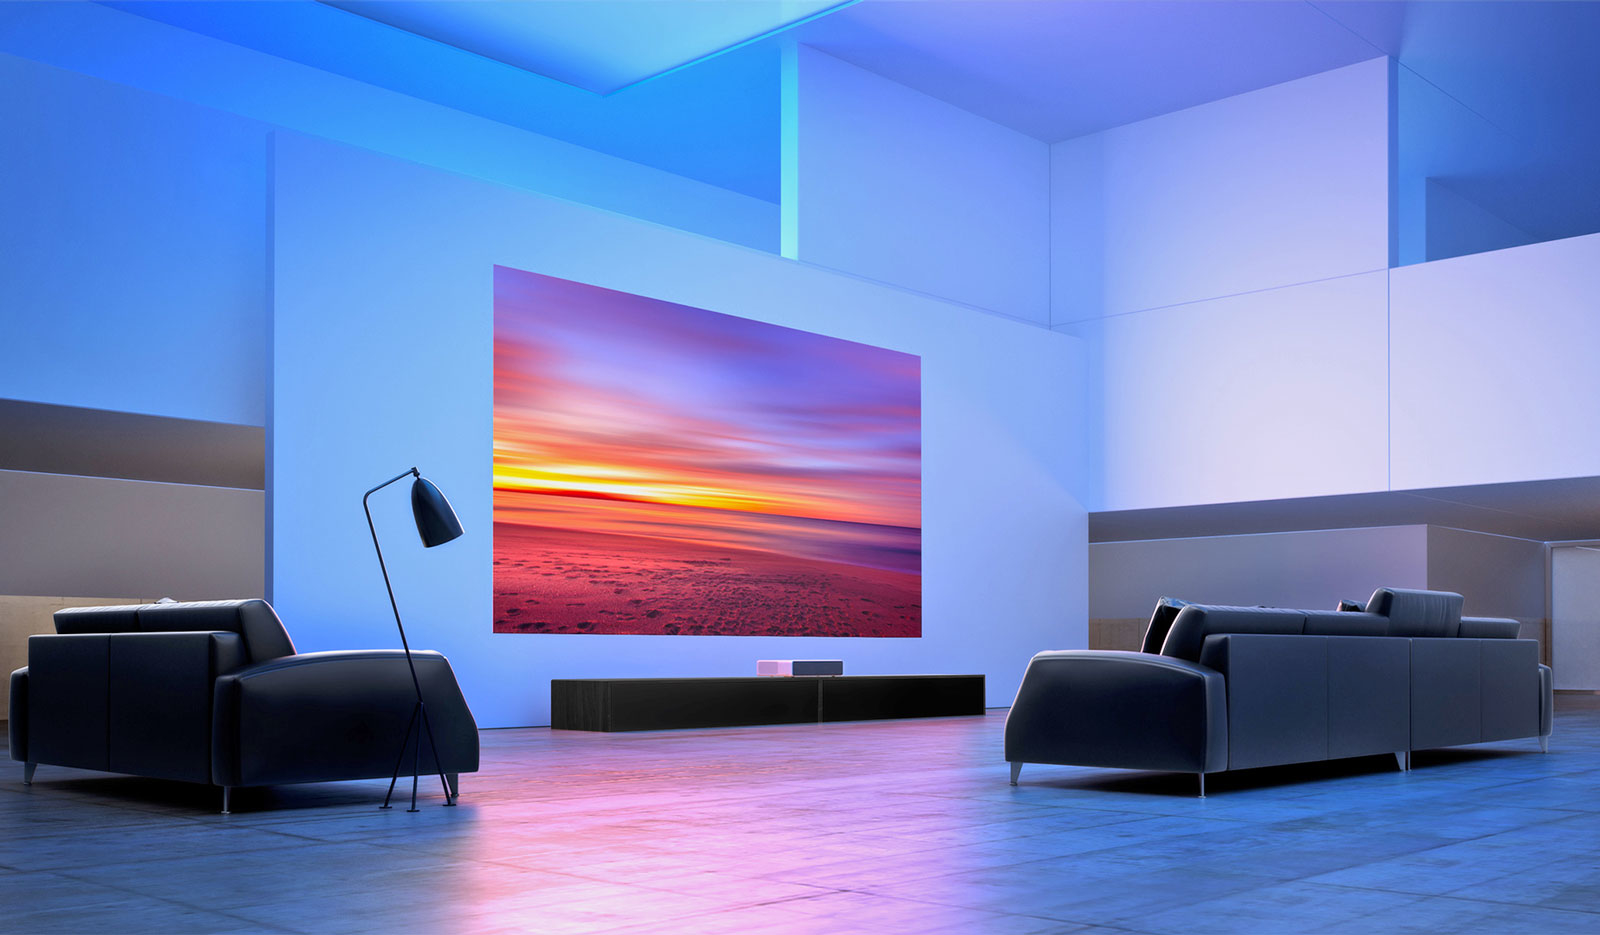 movie theater living room. xiaomi mi laser projector Get the Laser Projector Bringing Cinema Tech to Living Room for  1839